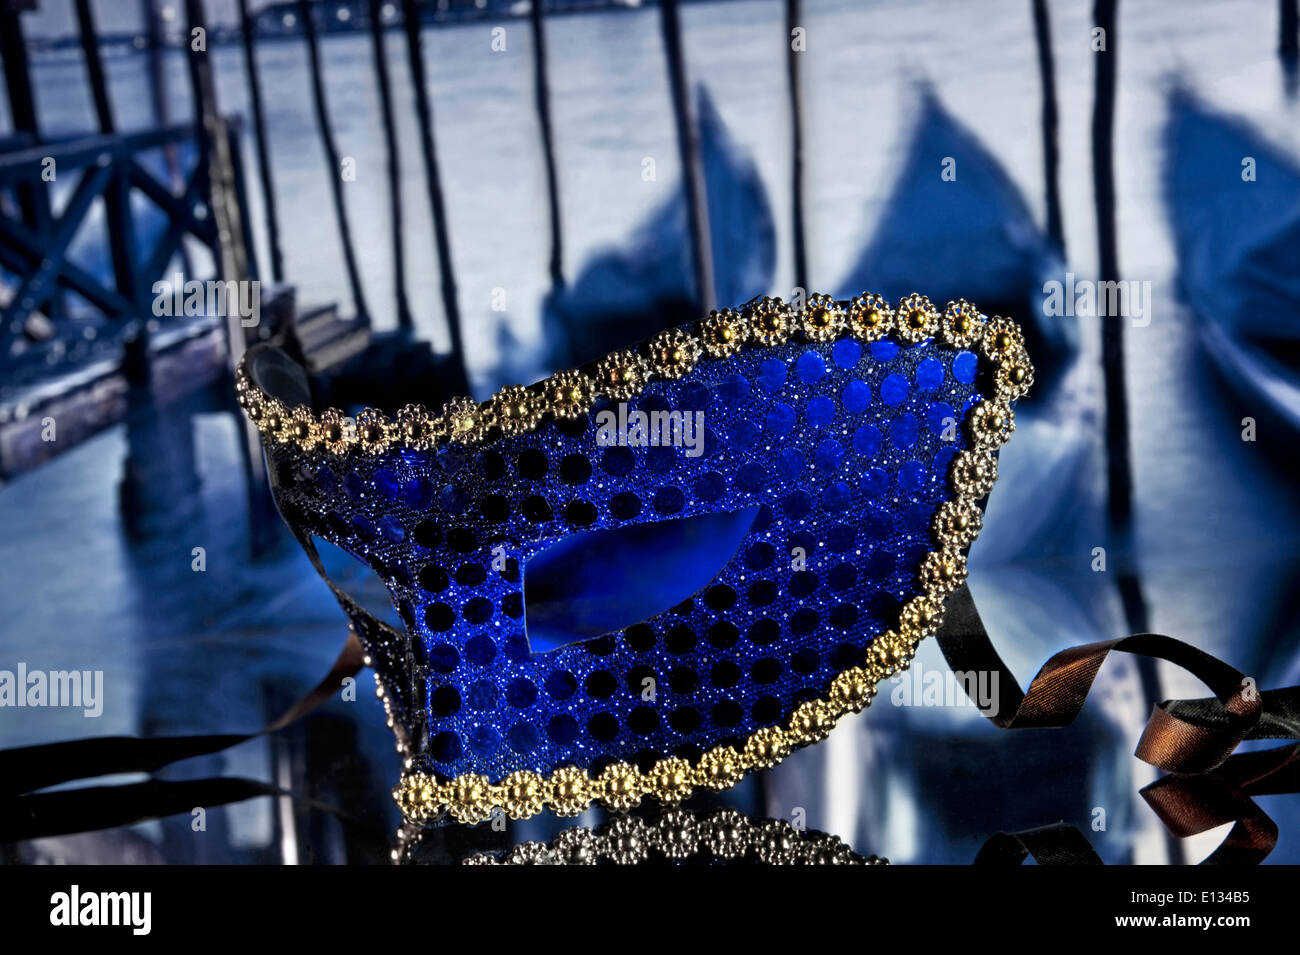 Atmospheric traditional Venetian carnival mask on cafe table with gondolas behind St Marks Square Venice Italy - Stock Image